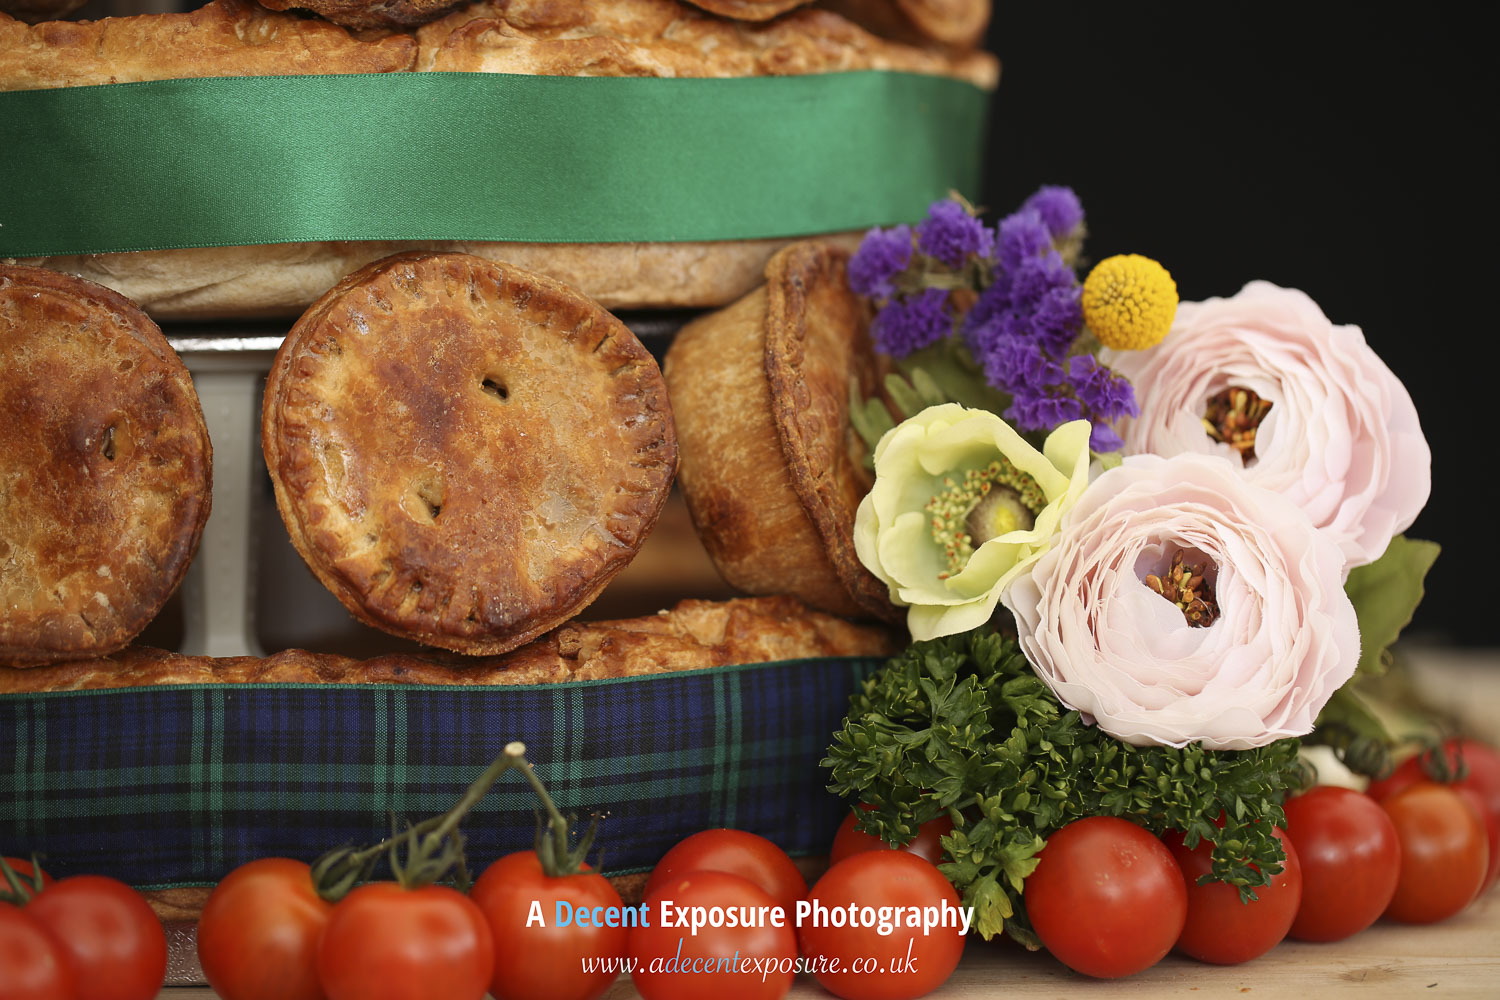 A Decent Exposure Commercial Product Photography